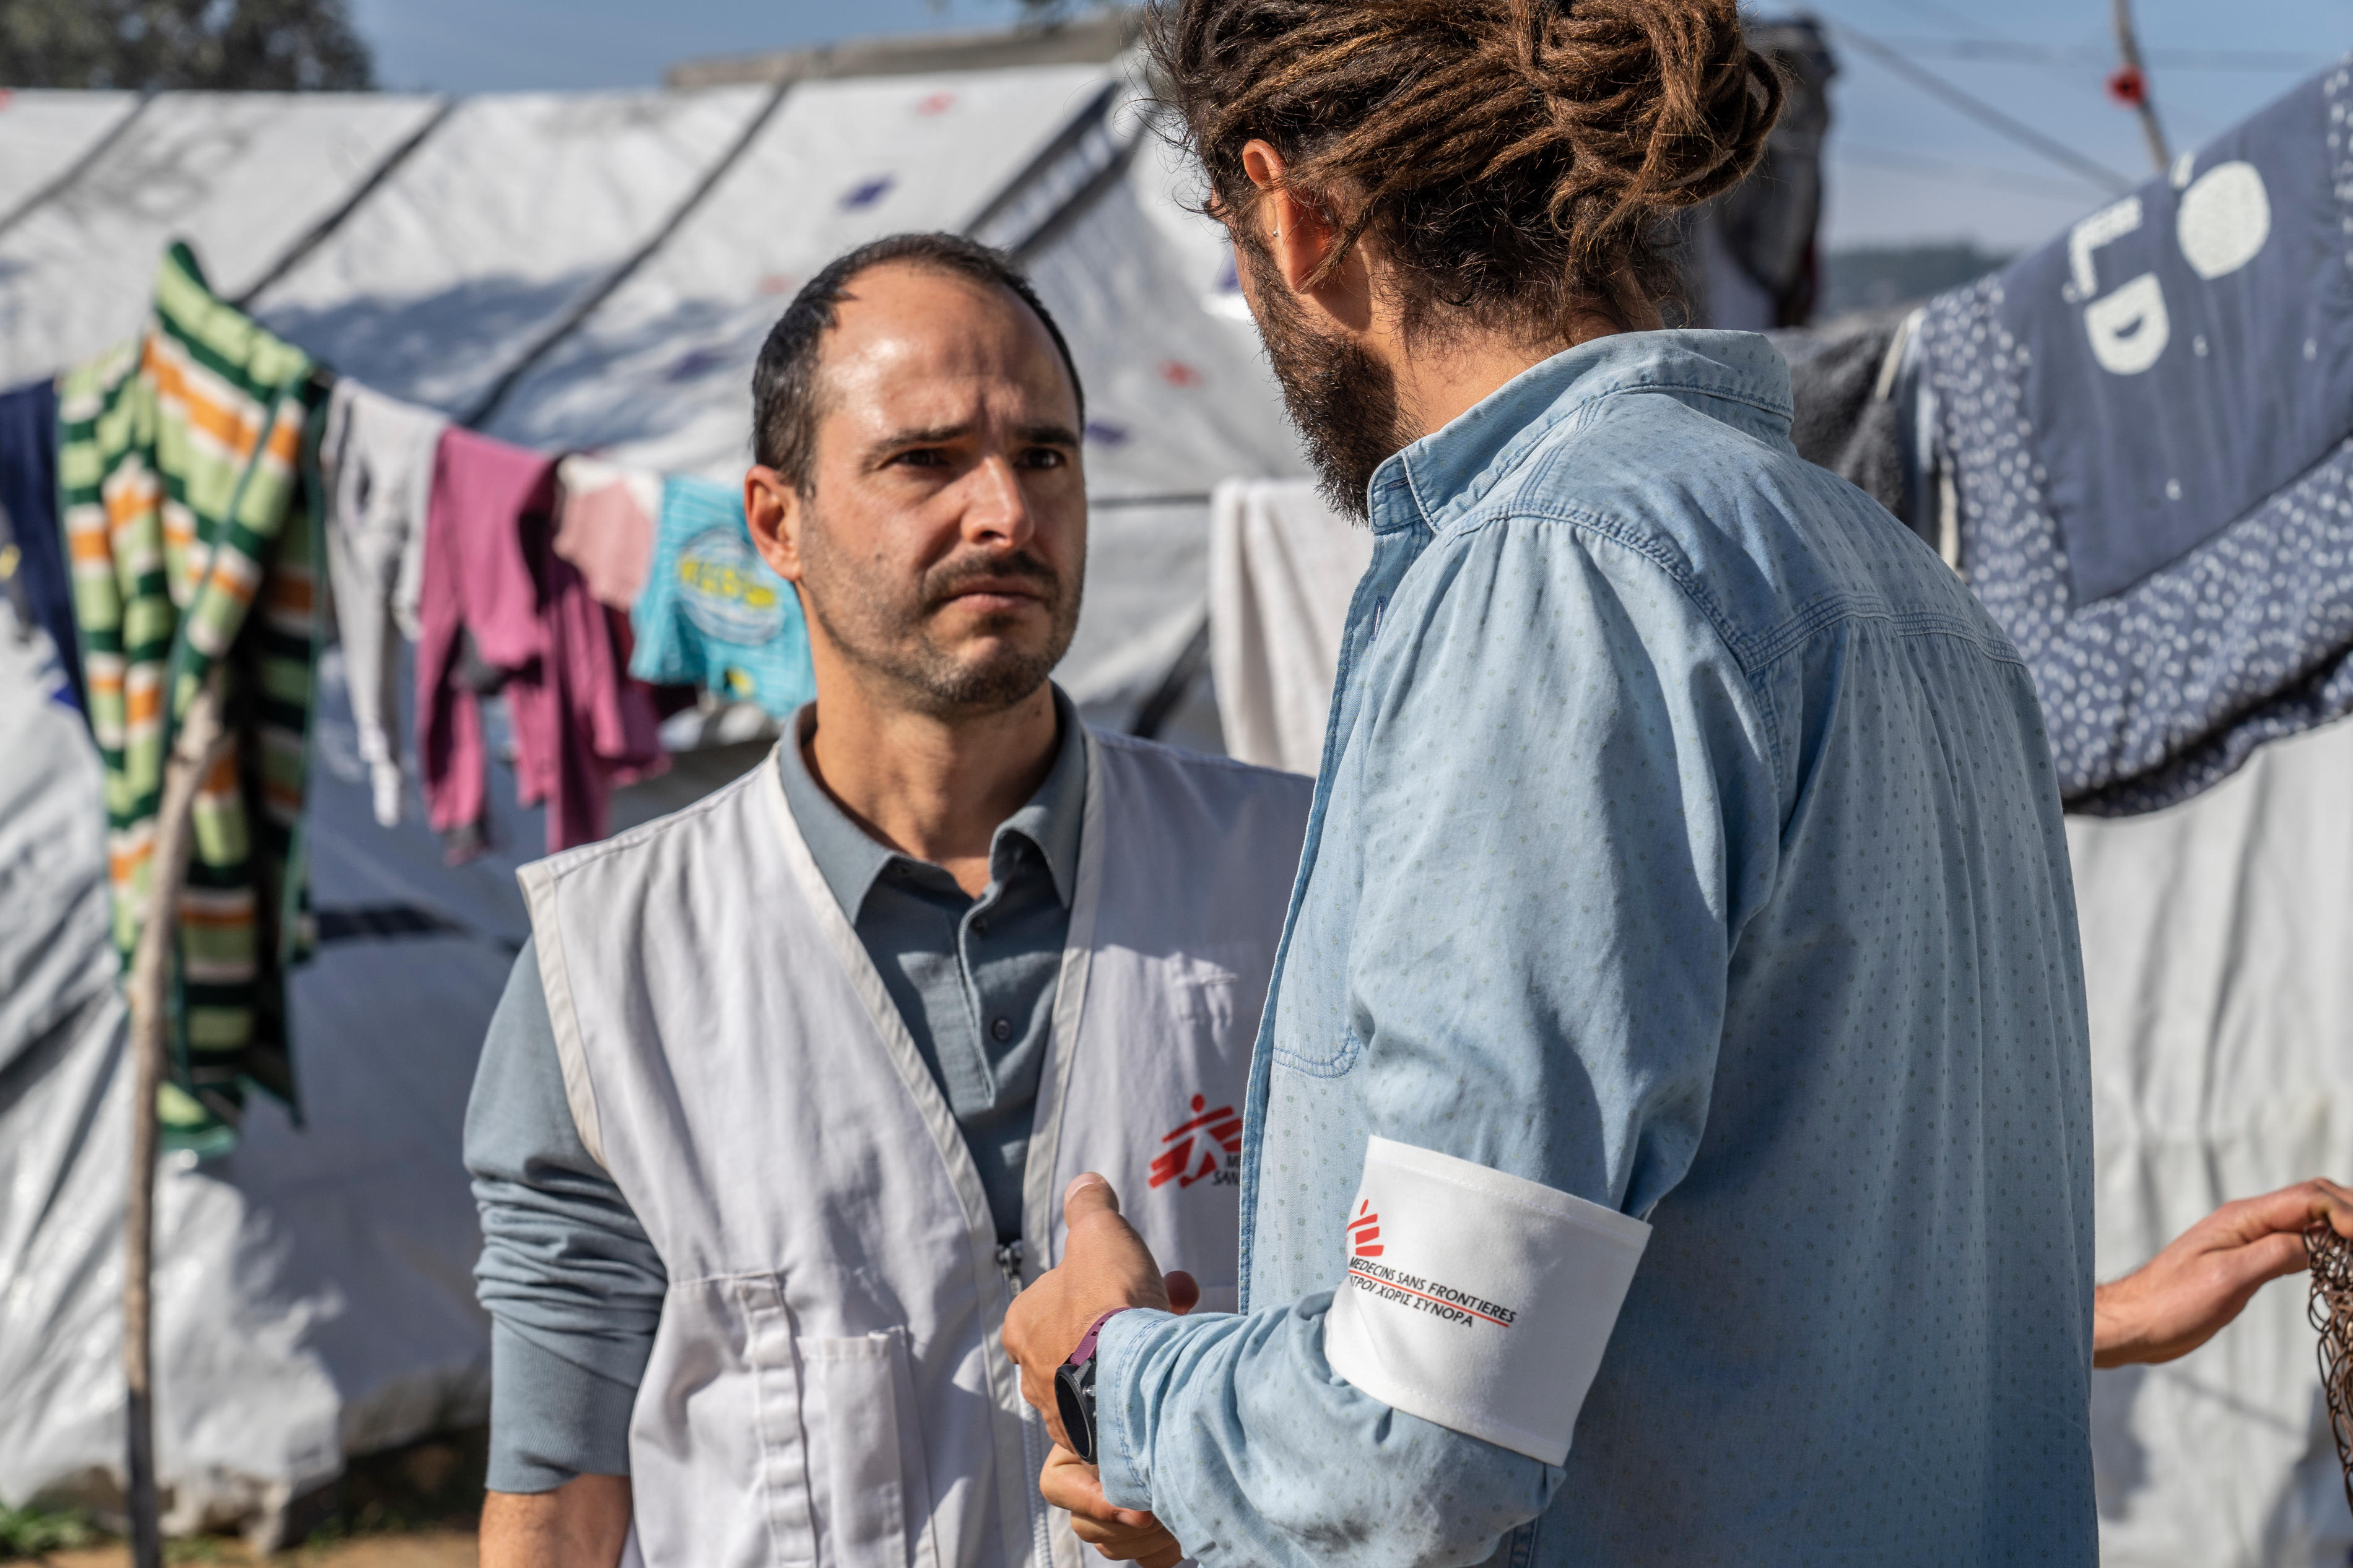 The MSF International President Christos Christou visitng Moria camp in Lesbos to see the situation of asylum seekers and refugees trapped on the greek islands.